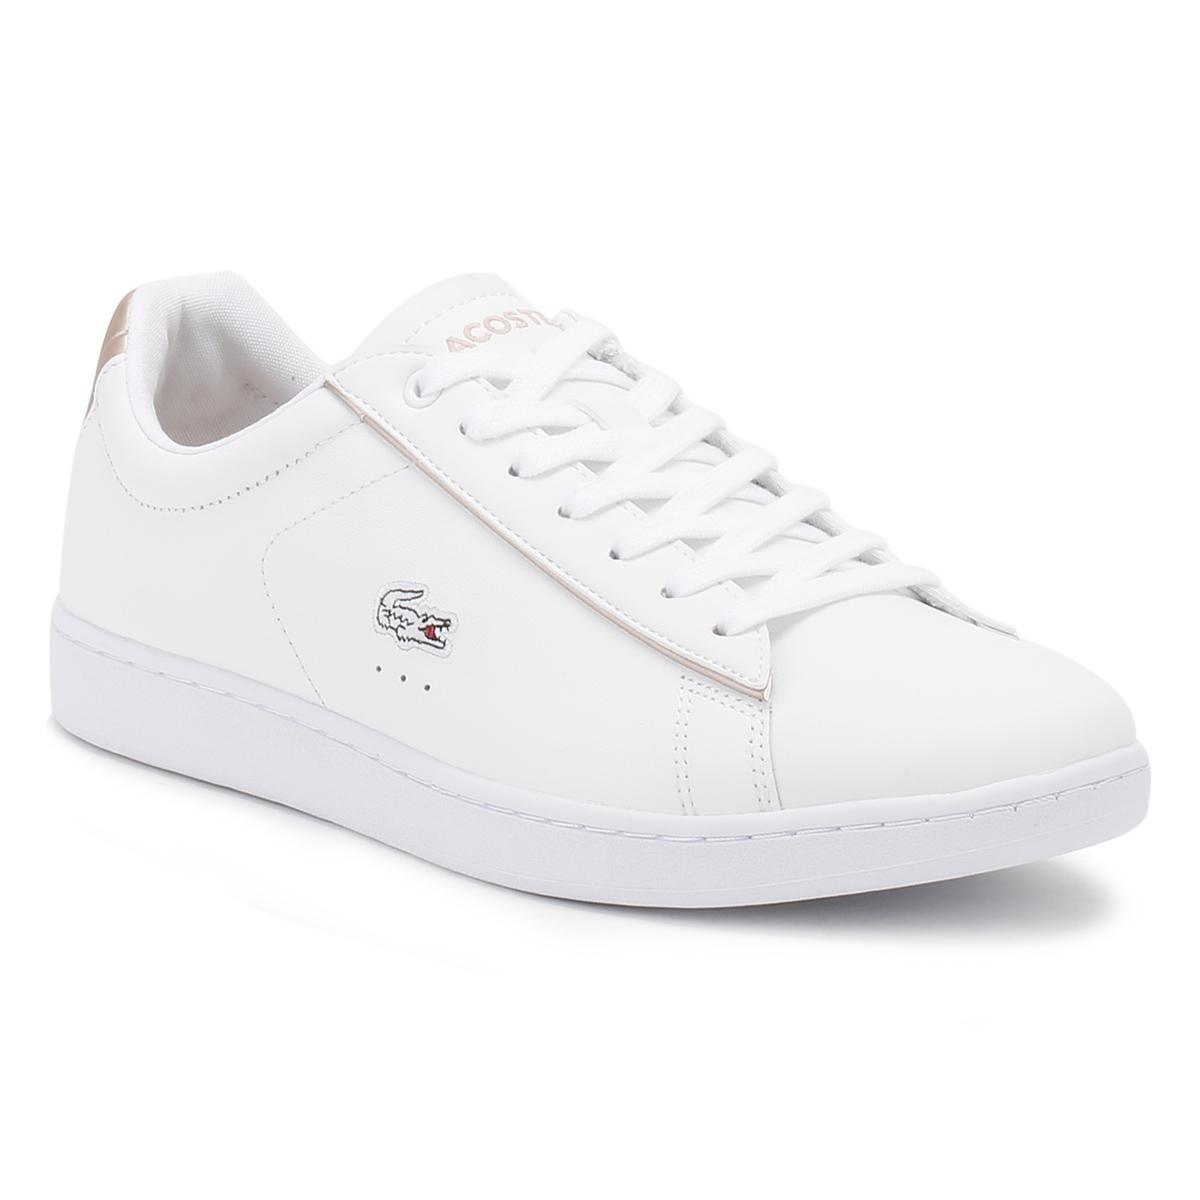 ff5ccee4118cc Lacoste Womens White/light Pink Carnaby Evo 217 2 Spw Trainers